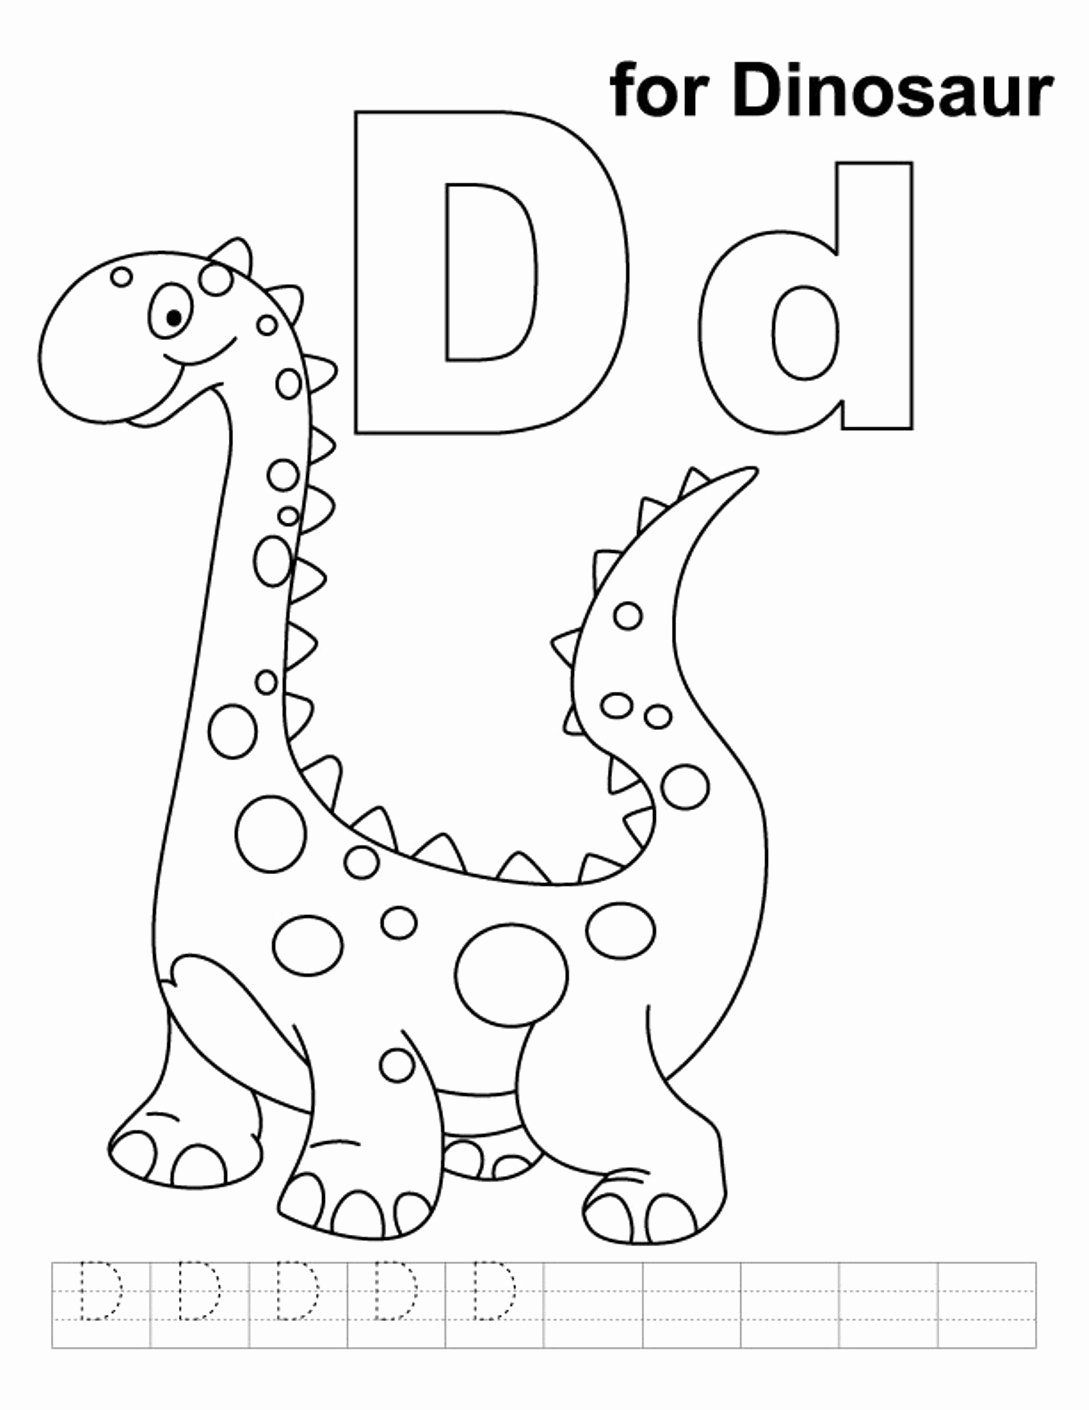 Alphabet Coloring Worksheets for 3 Year Olds Elegant Dinosaur Printable  Alphabet Coloring Pages – Color… in 2020   Dinosaur coloring pages [ 1410 x 1089 Pixel ]